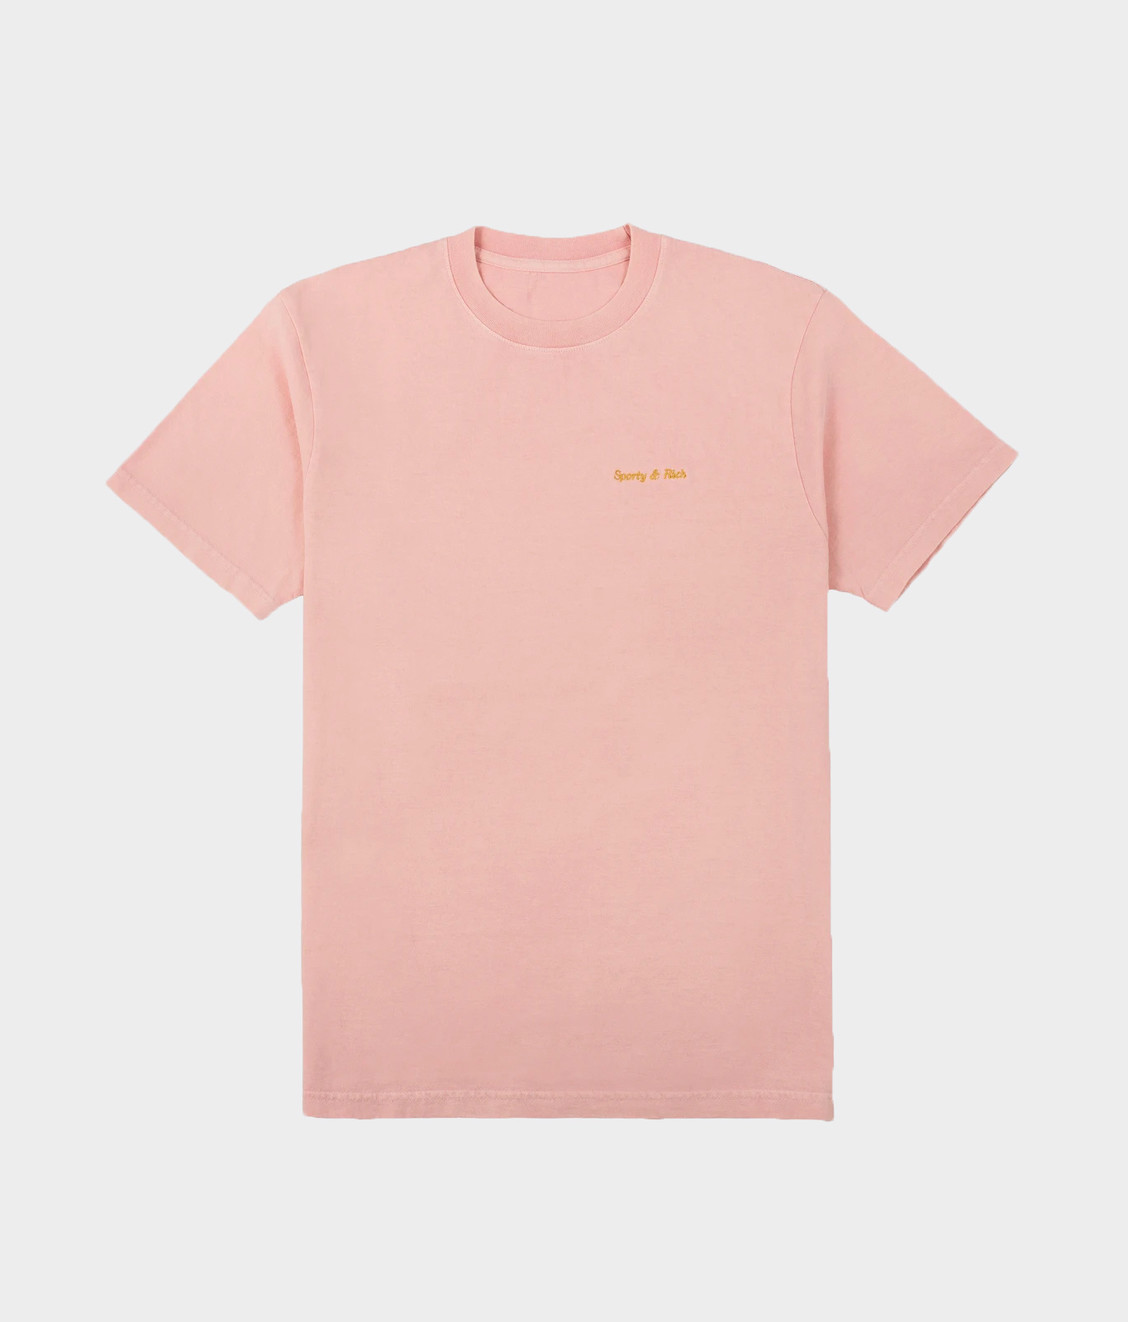 Sporty and Rich Sporty & Rich Classic Logo Tee Powder Pink